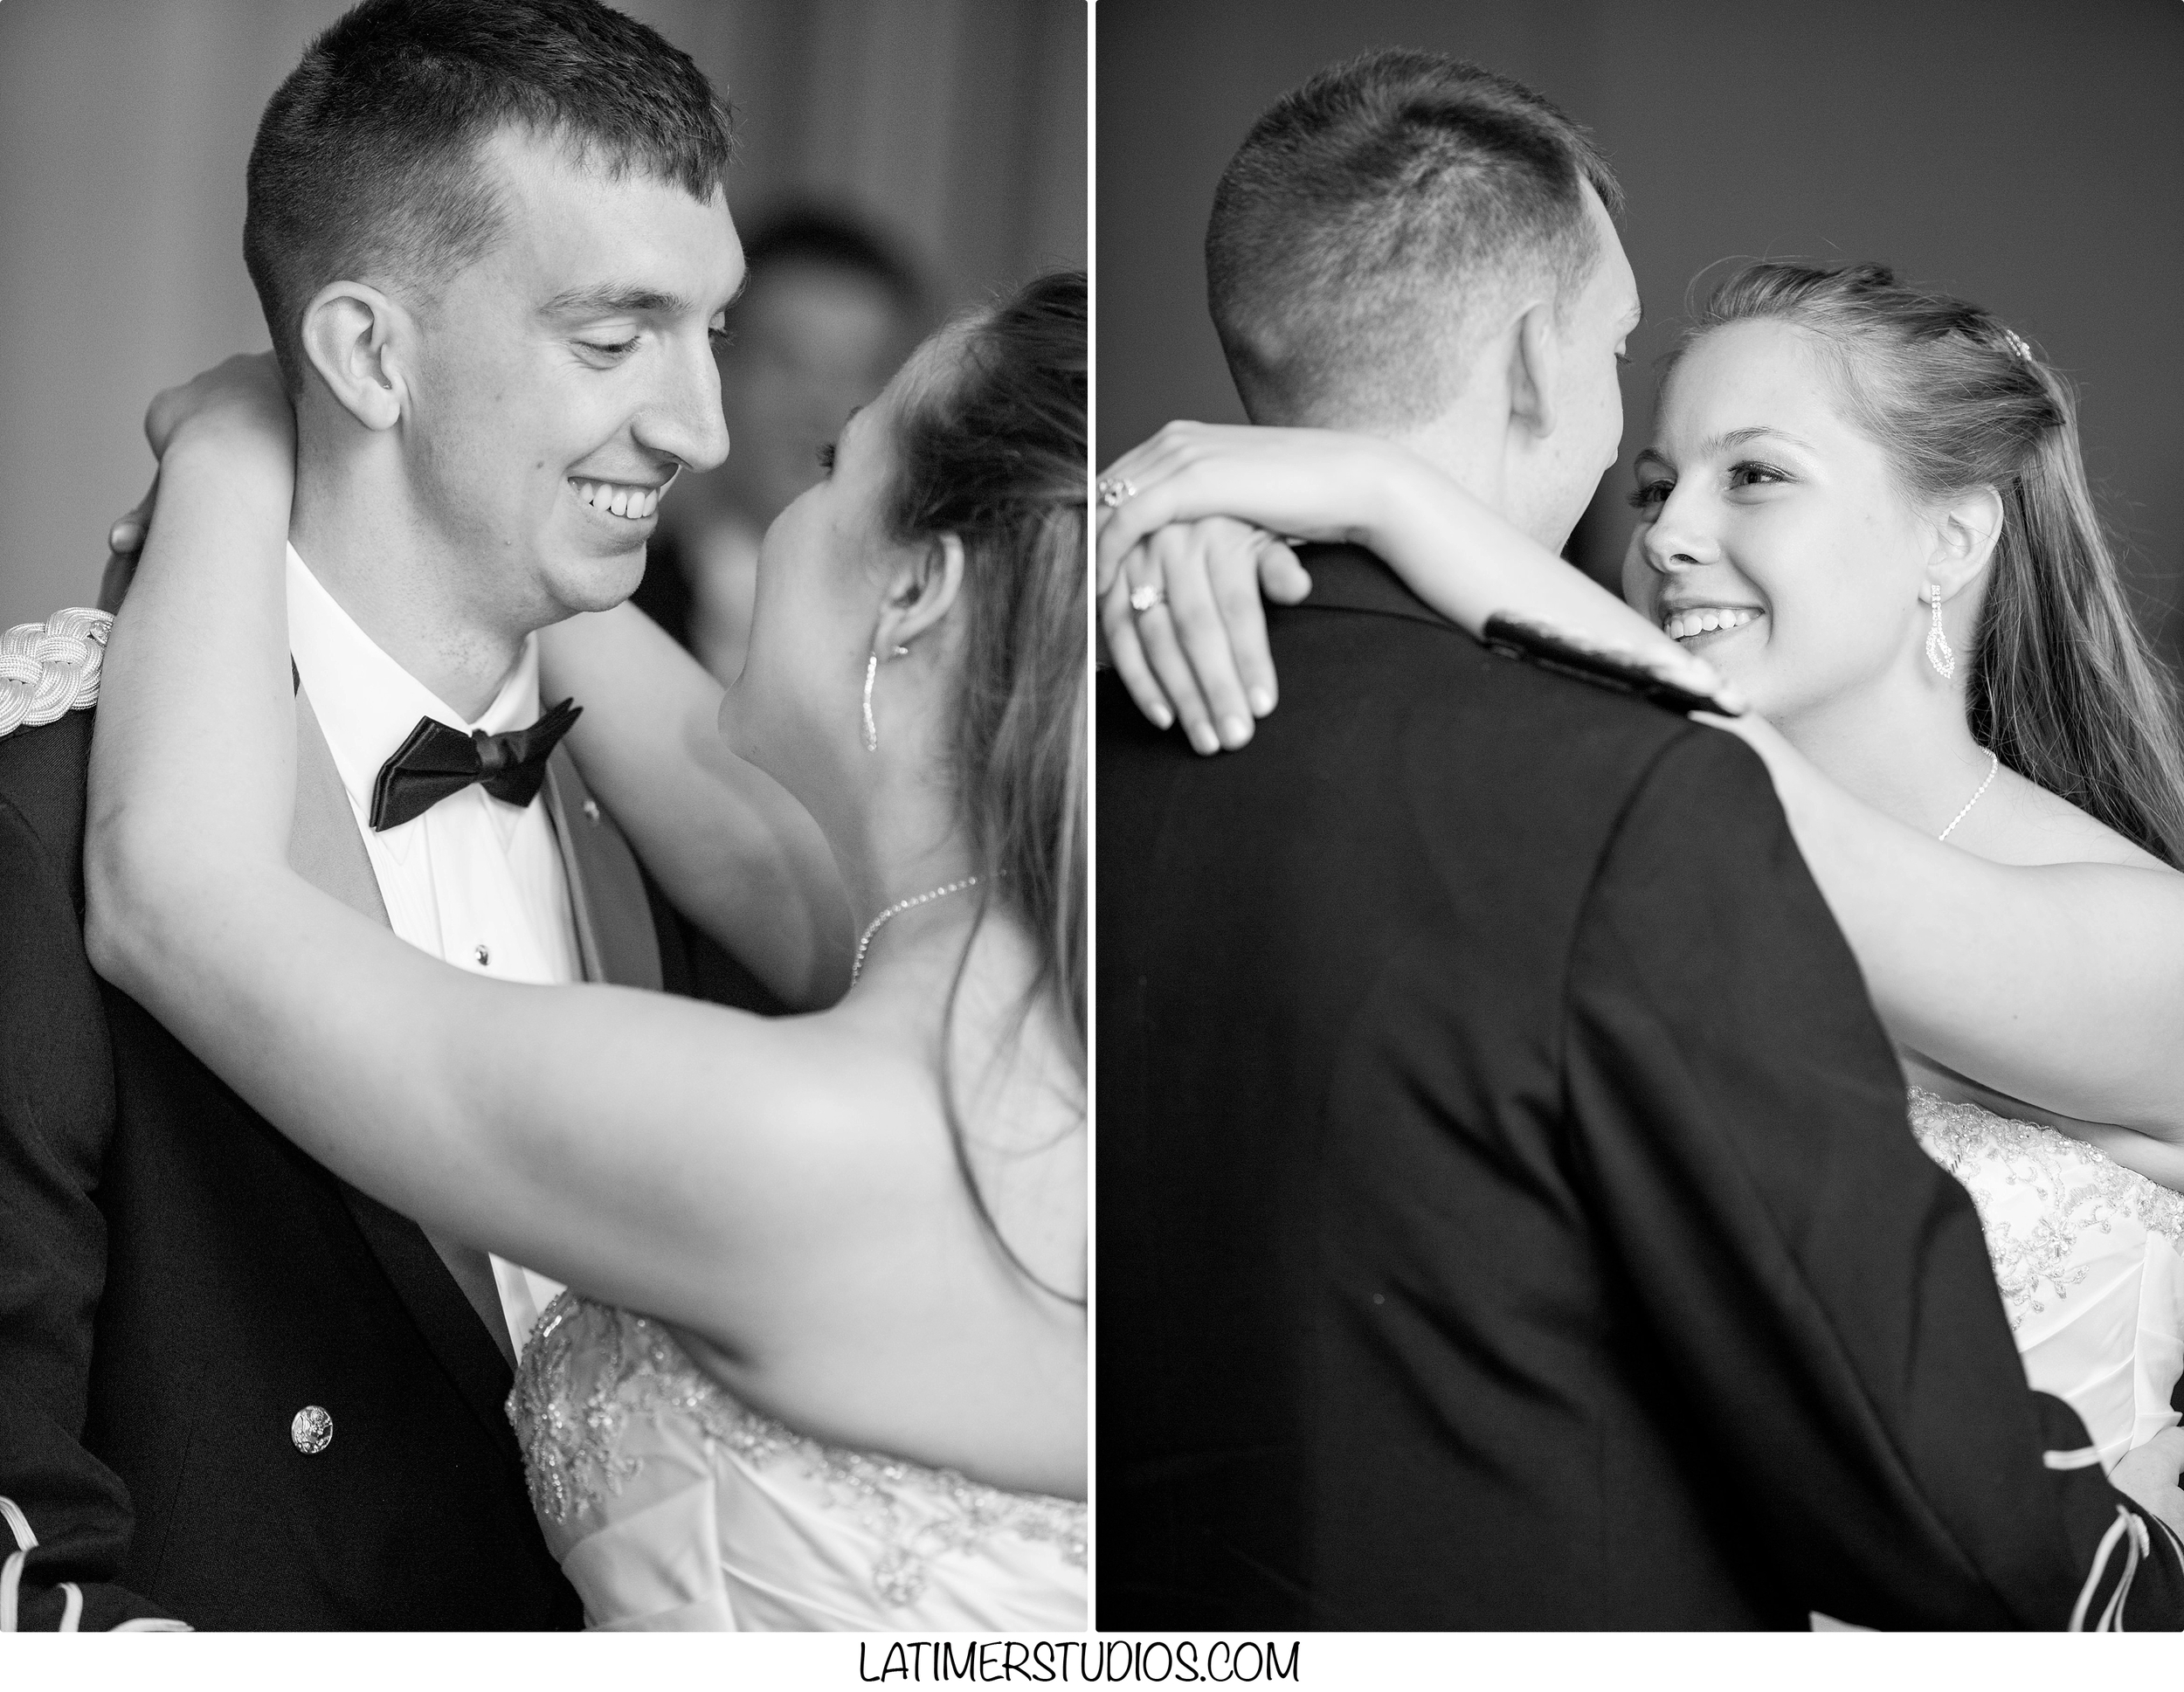 Latimer Studios Photography capturing a first dance at Wentworth by the Sea in Rye NH